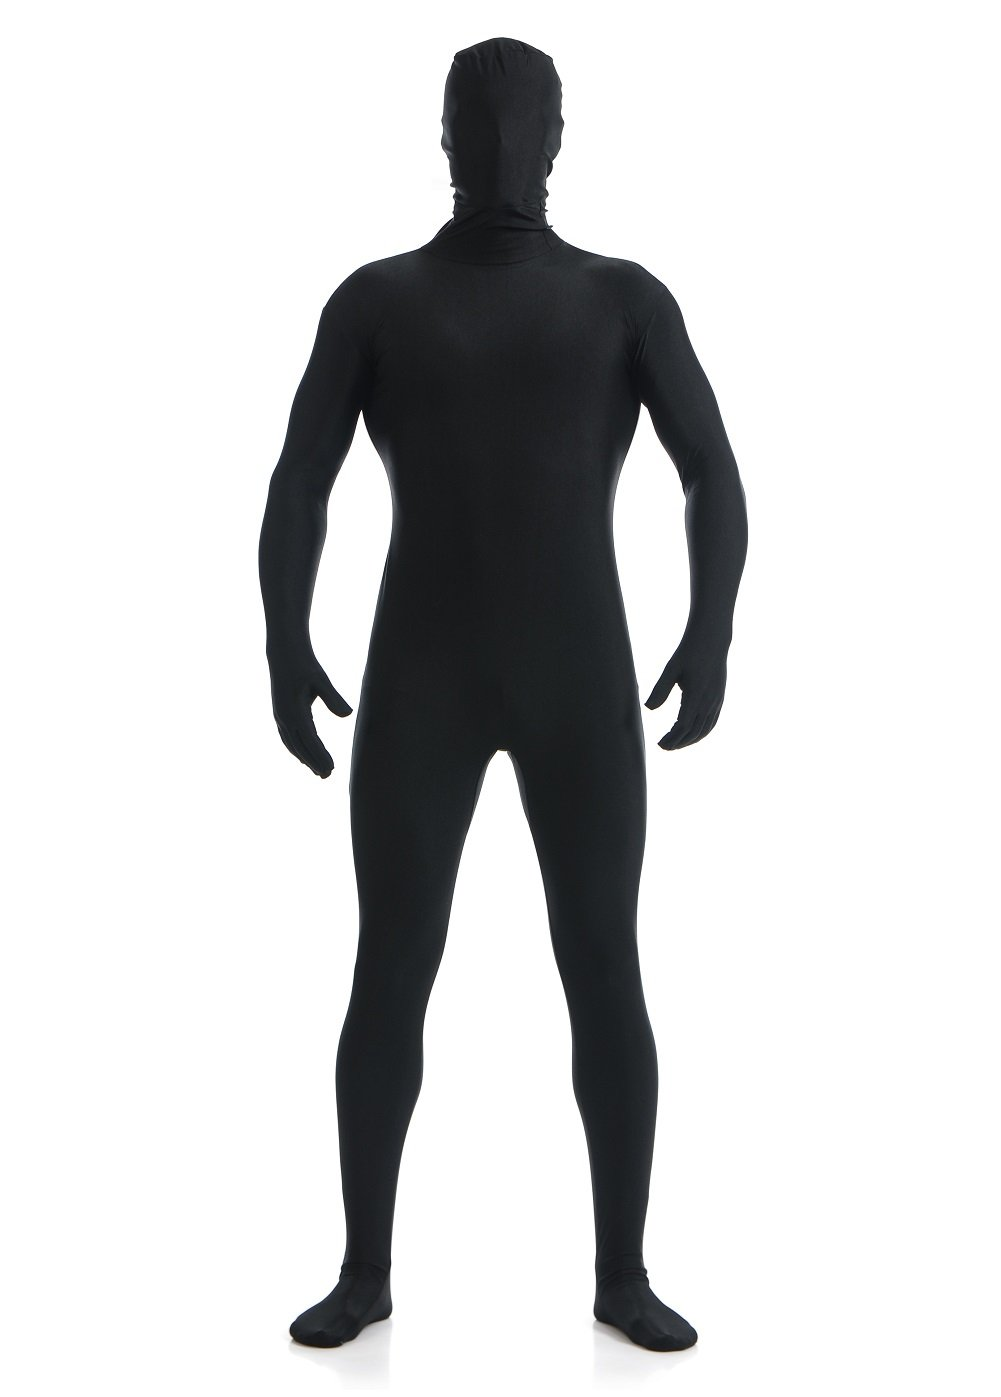 Halloween Costumes Spandex Black Bodysuit Full Zentai Lycra Spandex Suit Men Women Unisex for Cosplay, Halloween,Performance Size L